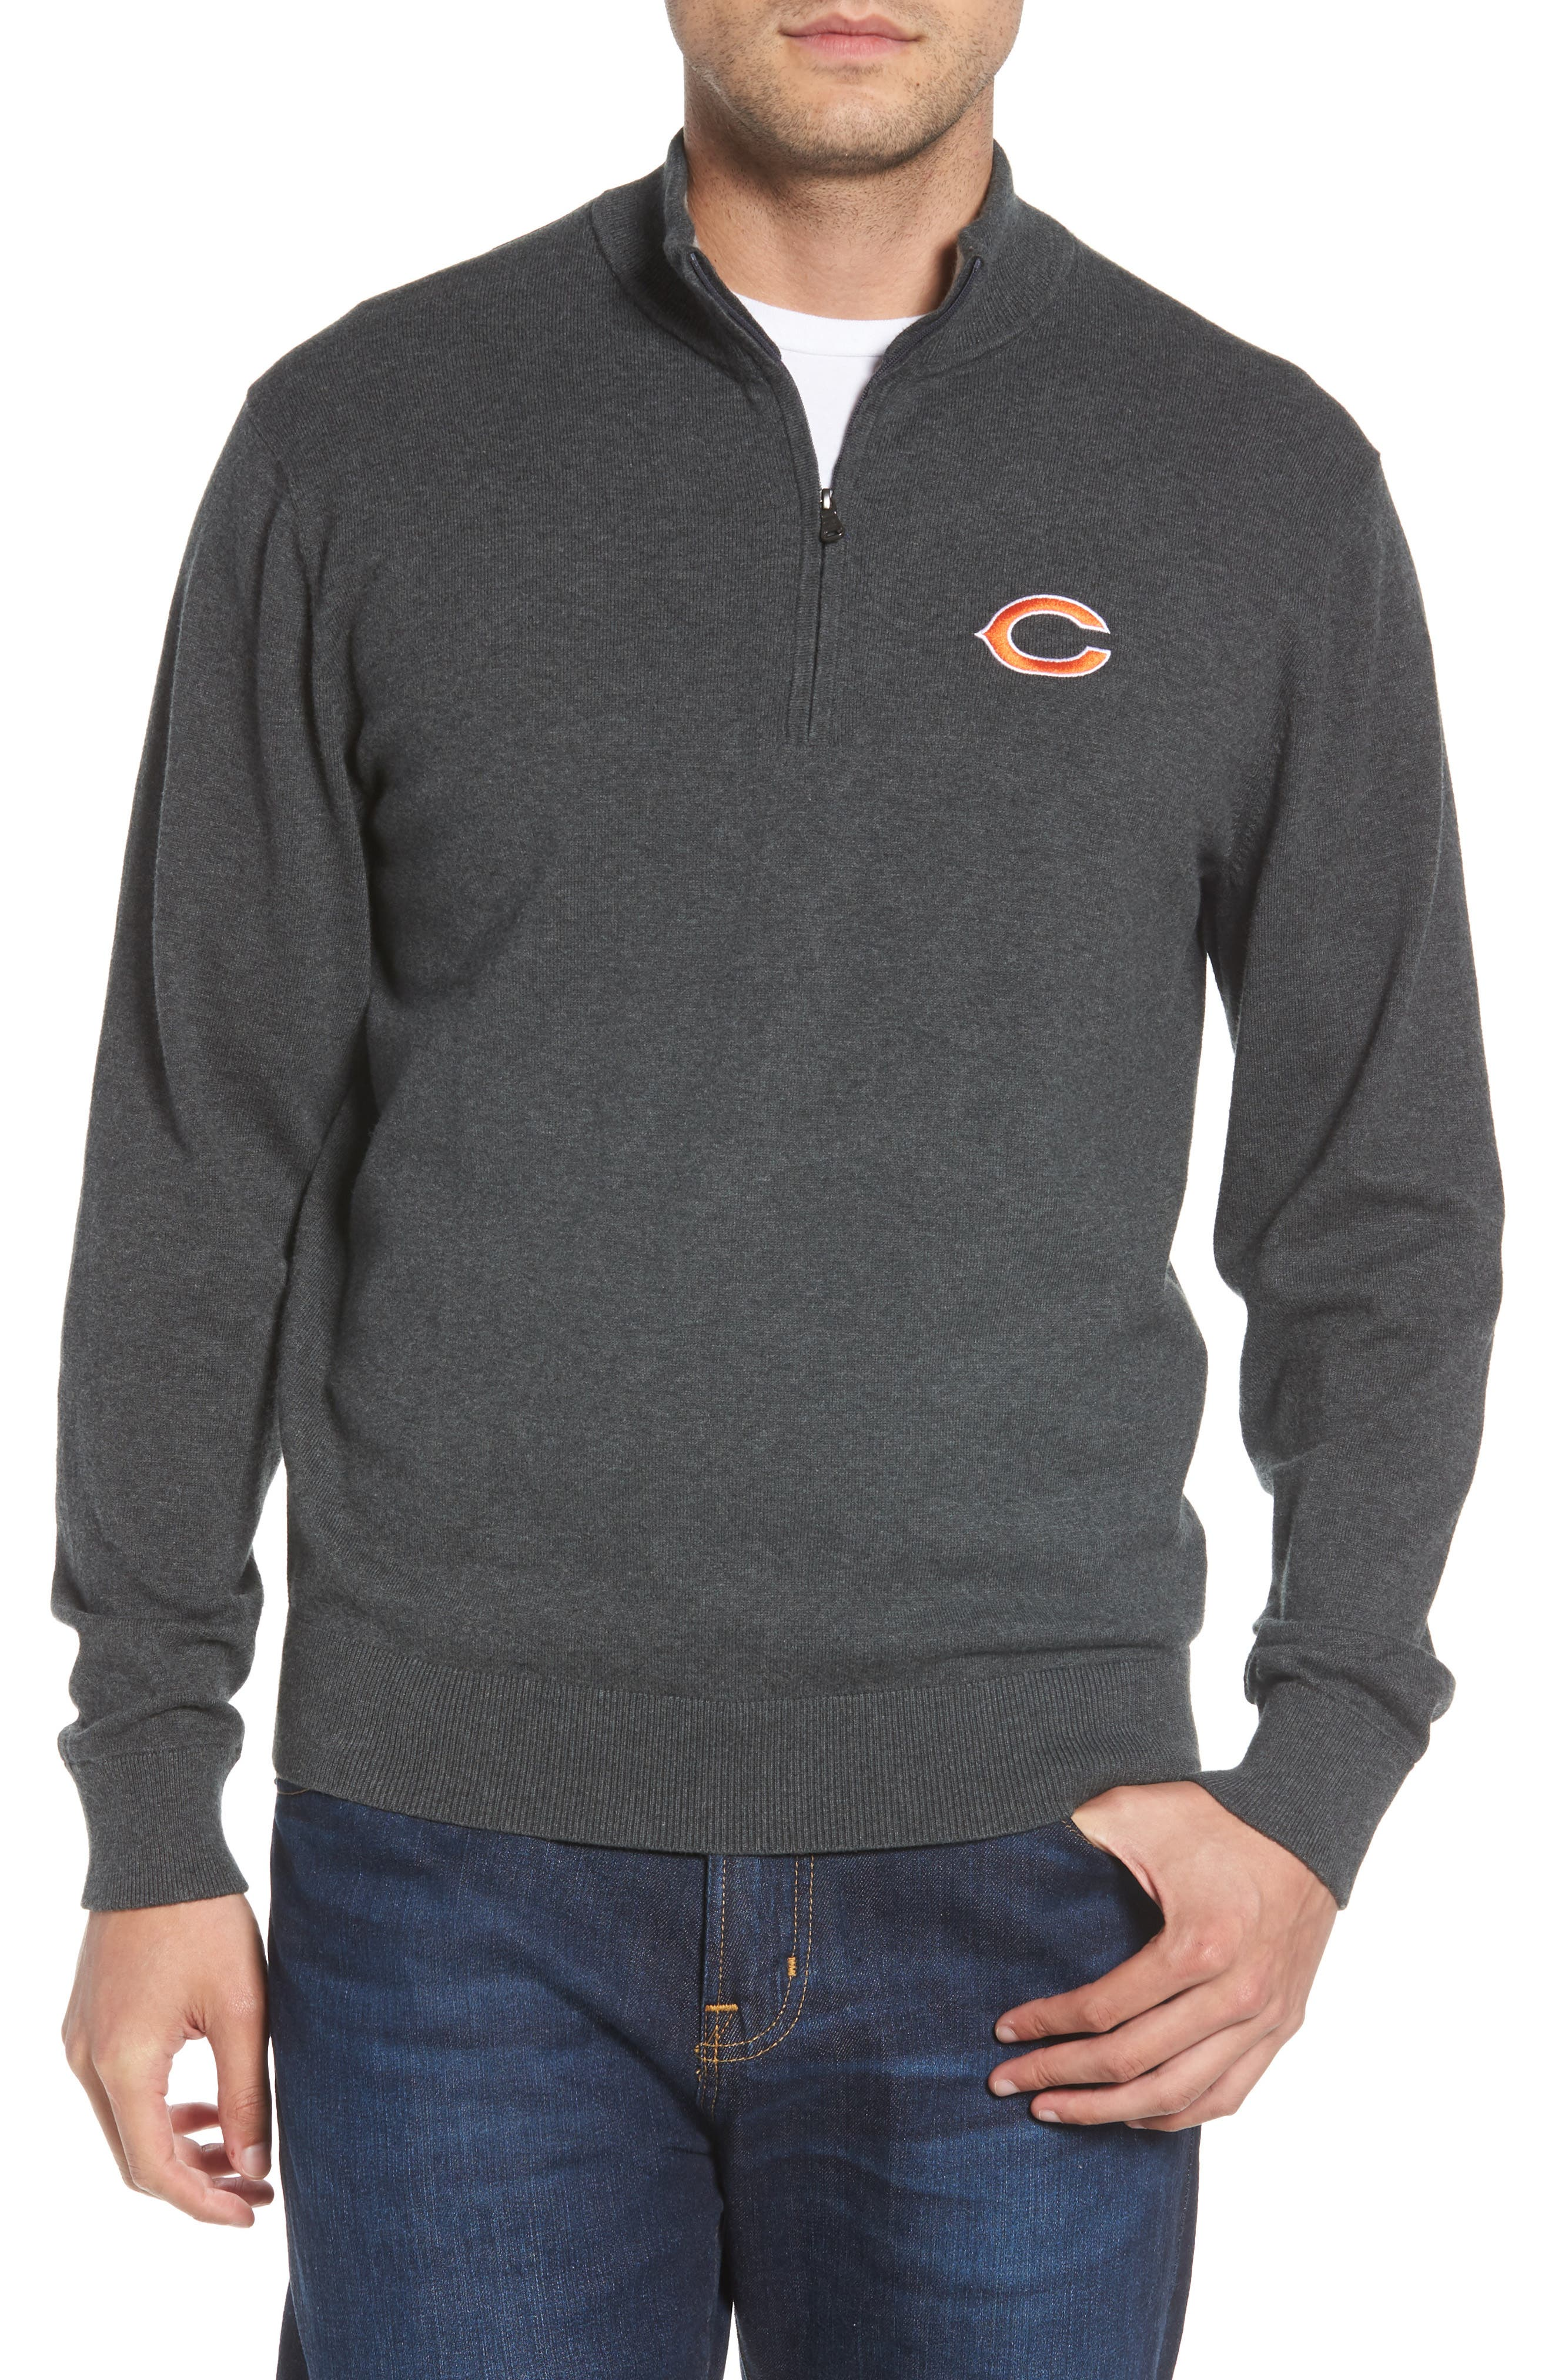 Look sharp from the office to the stadium in a mock-neck sweater that makes a handsome layering piece for brisk days. The lightweight jersey knit is reinforced at the collar and cuffs with double-layer ribbing for warmth and contrast. Style Name: Cutter & Buck Chicago Bears - Lakemont Regular Fit Quarter Zip Sweater. Style Number: 5631569. Available in stores.